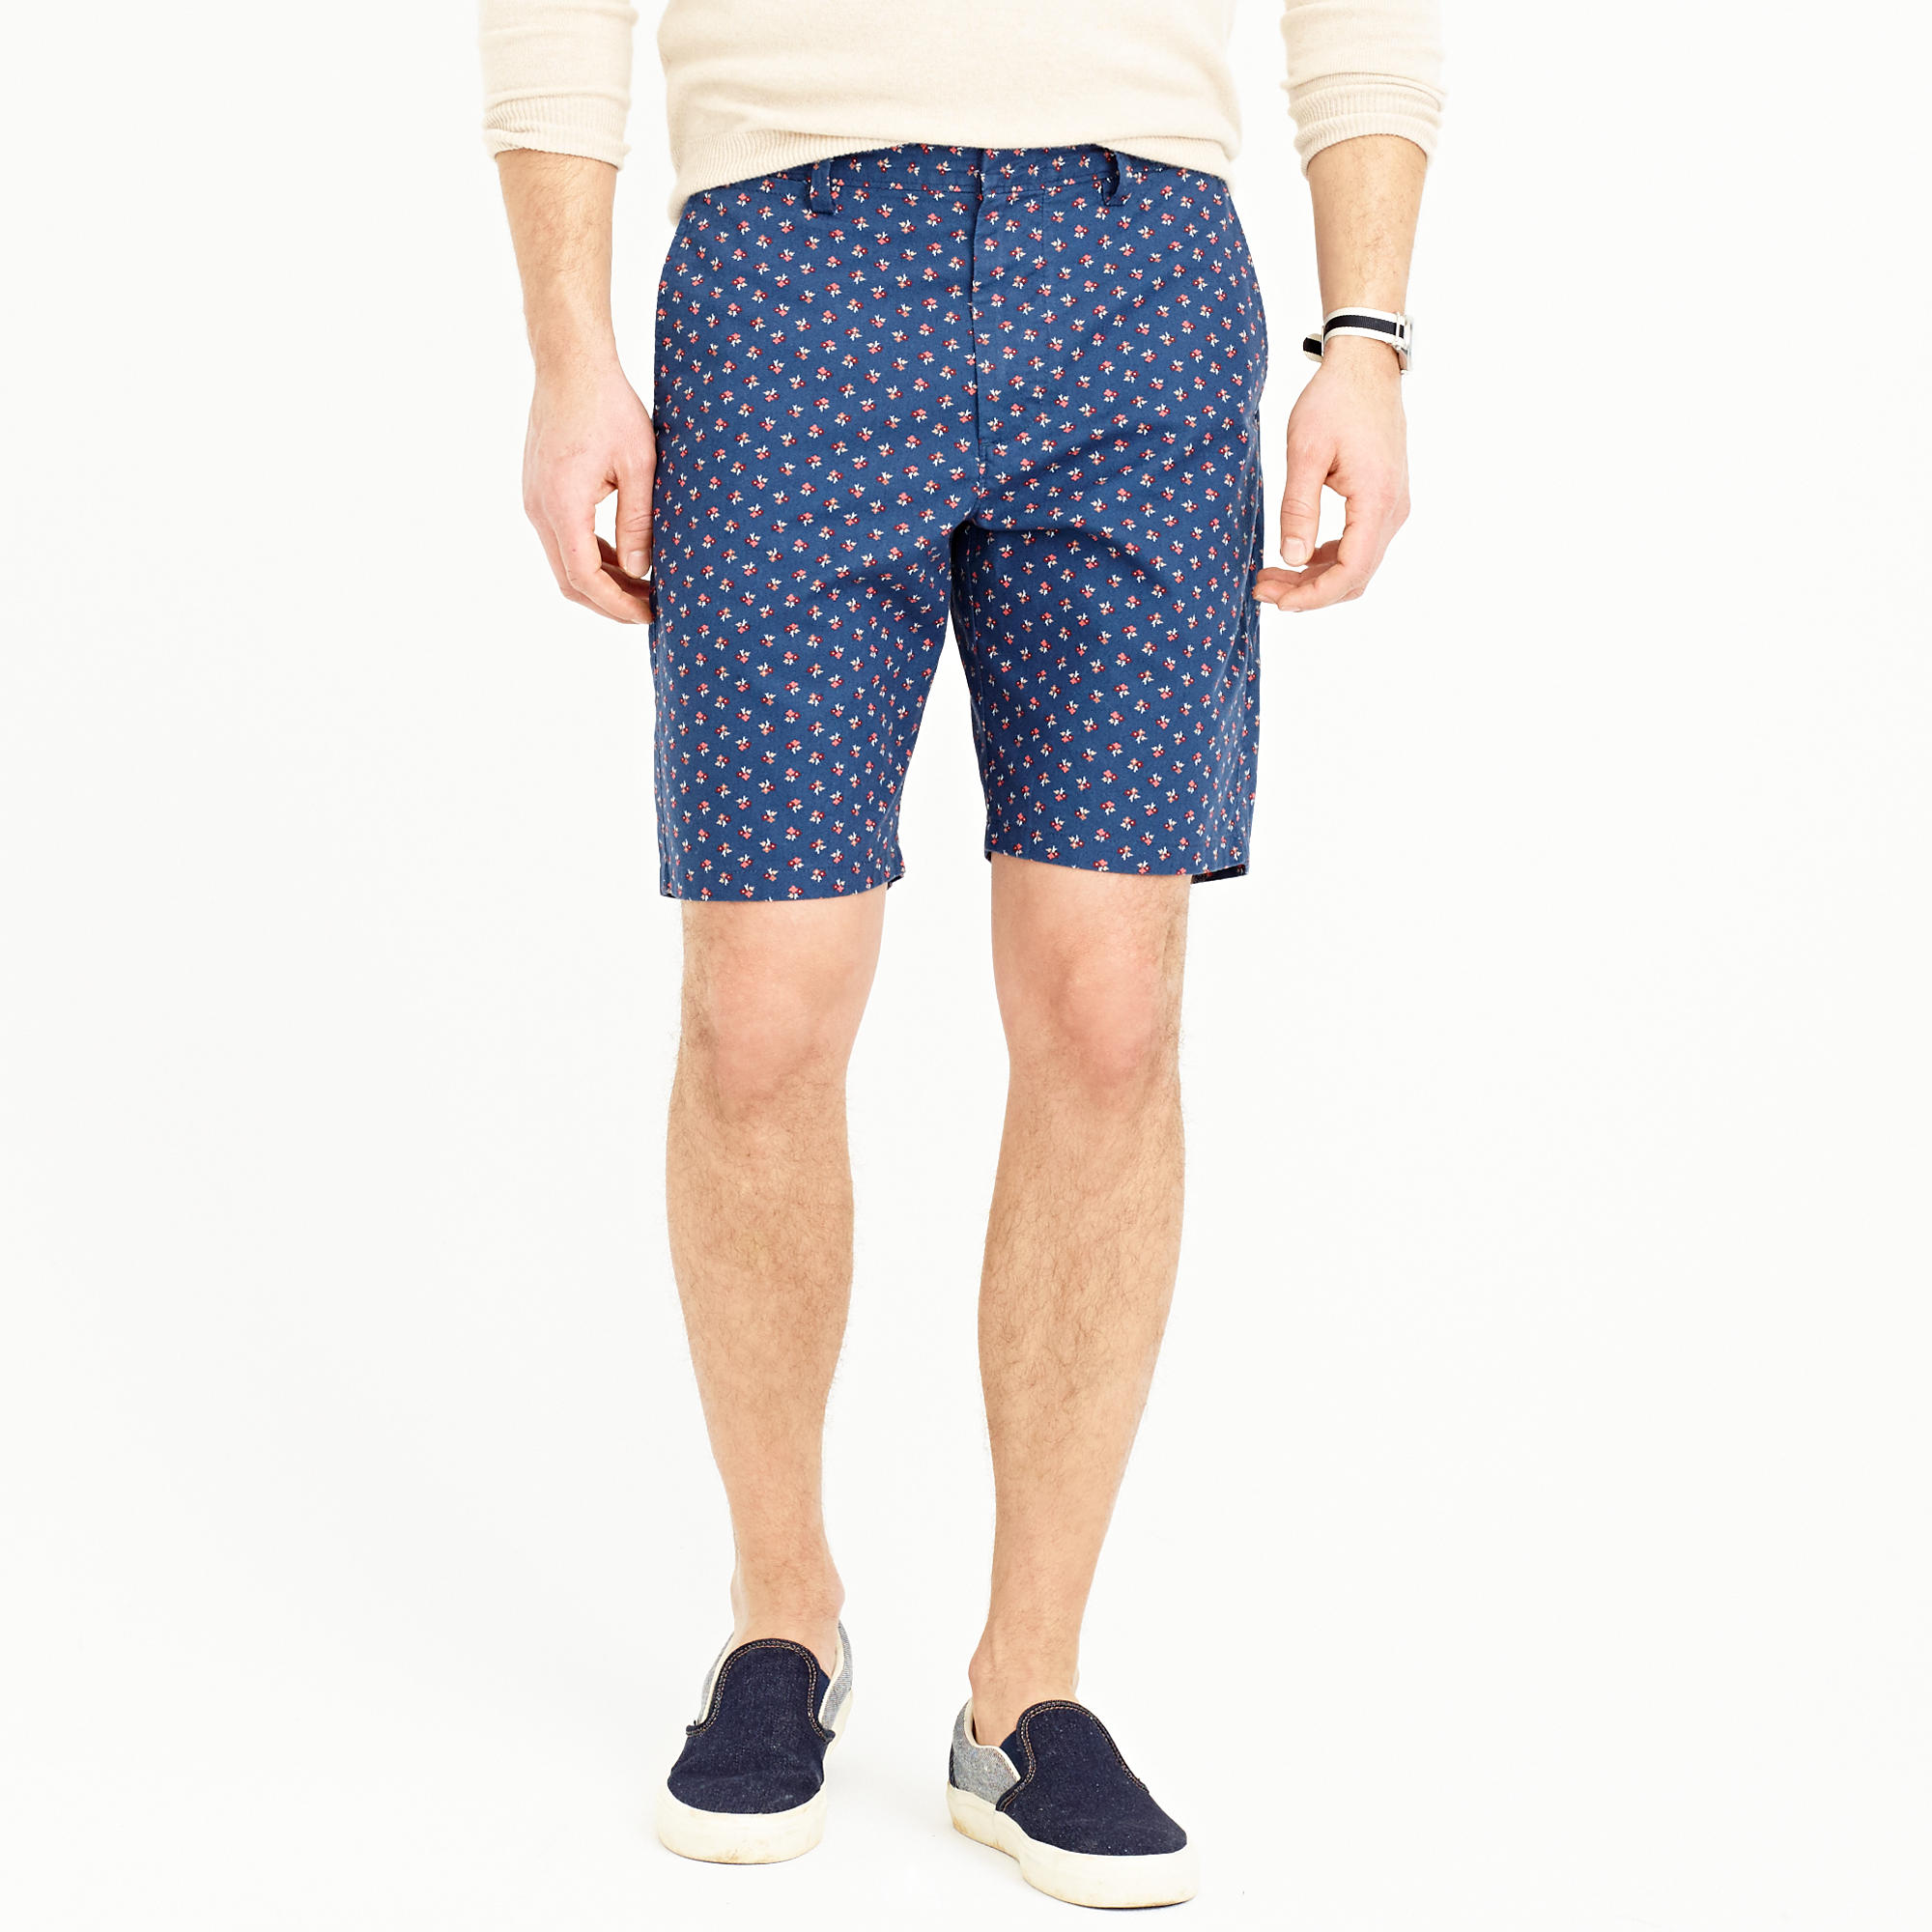 "J.Crew 9"" Club Short in Navy Floral 